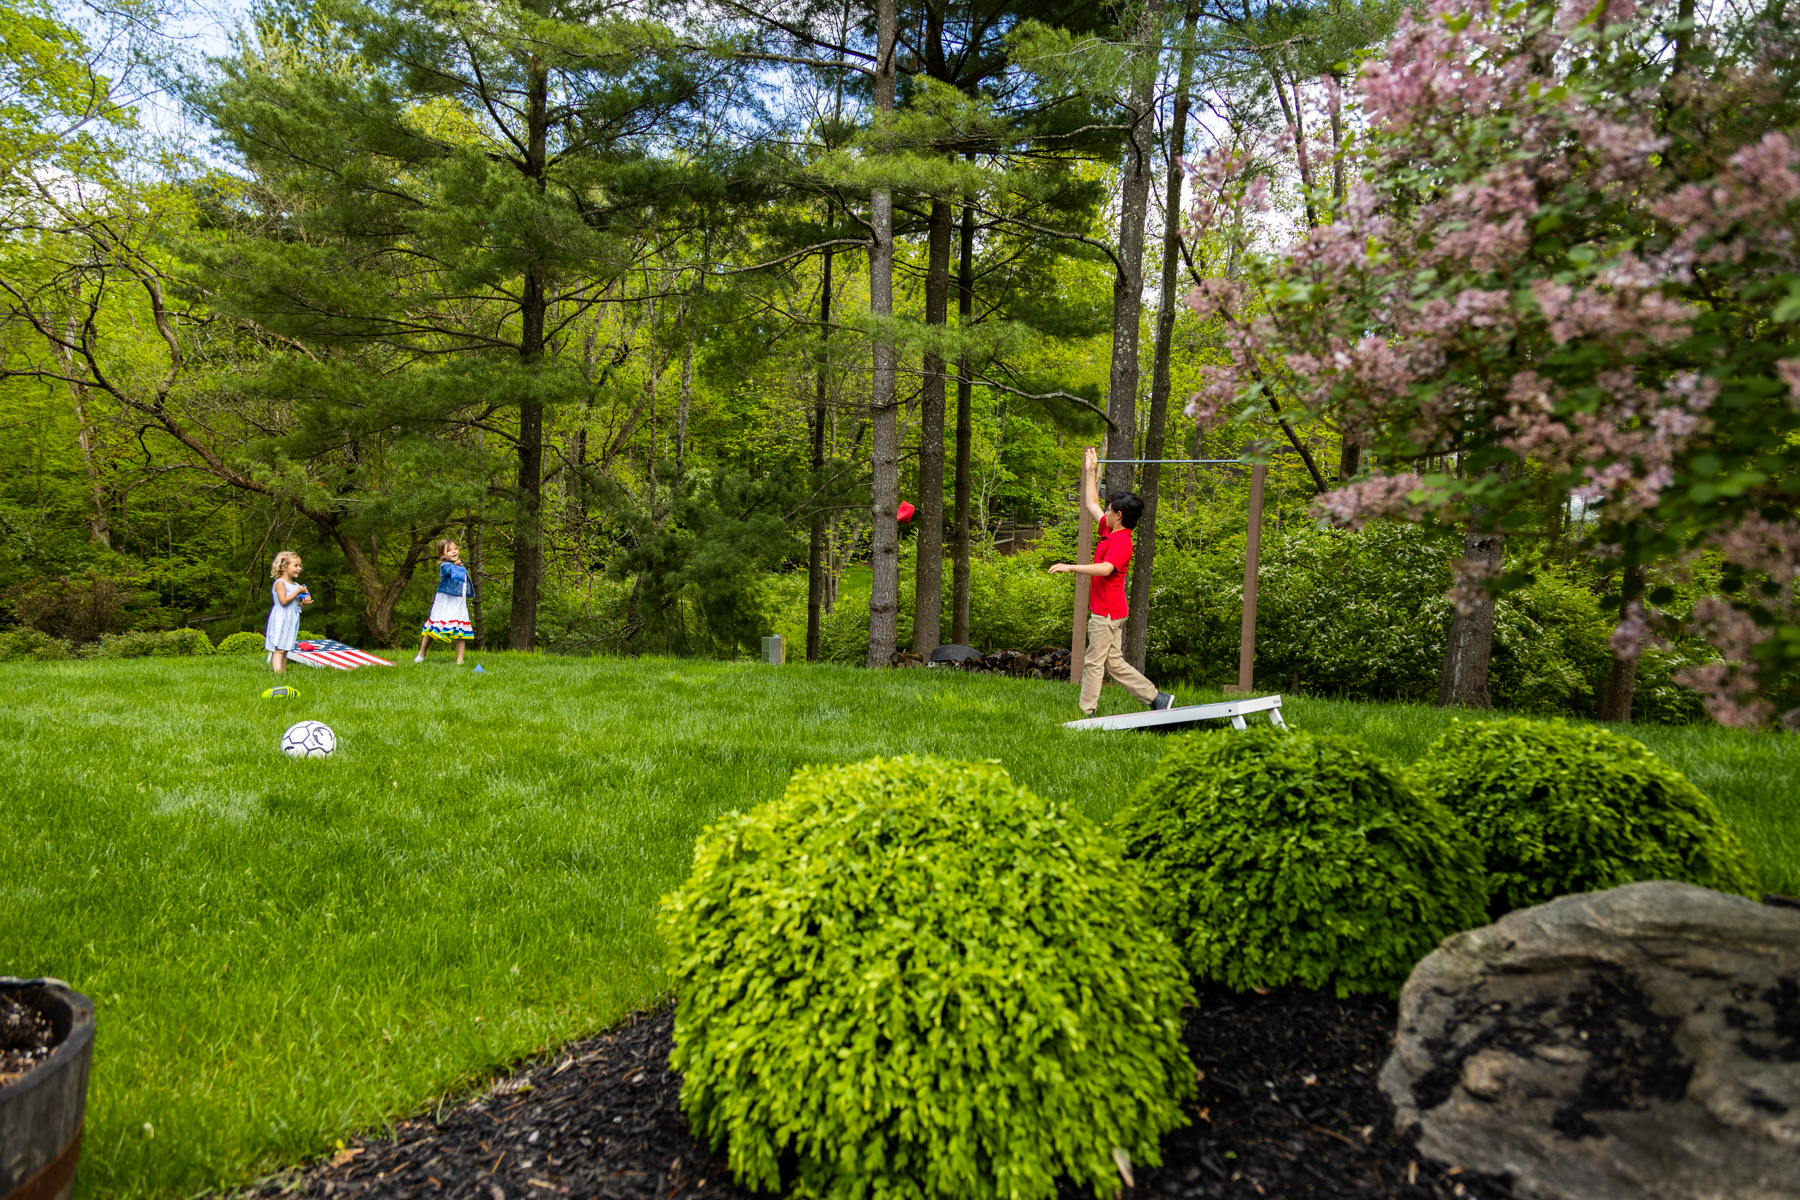 Healthy lawn can be great for the environment